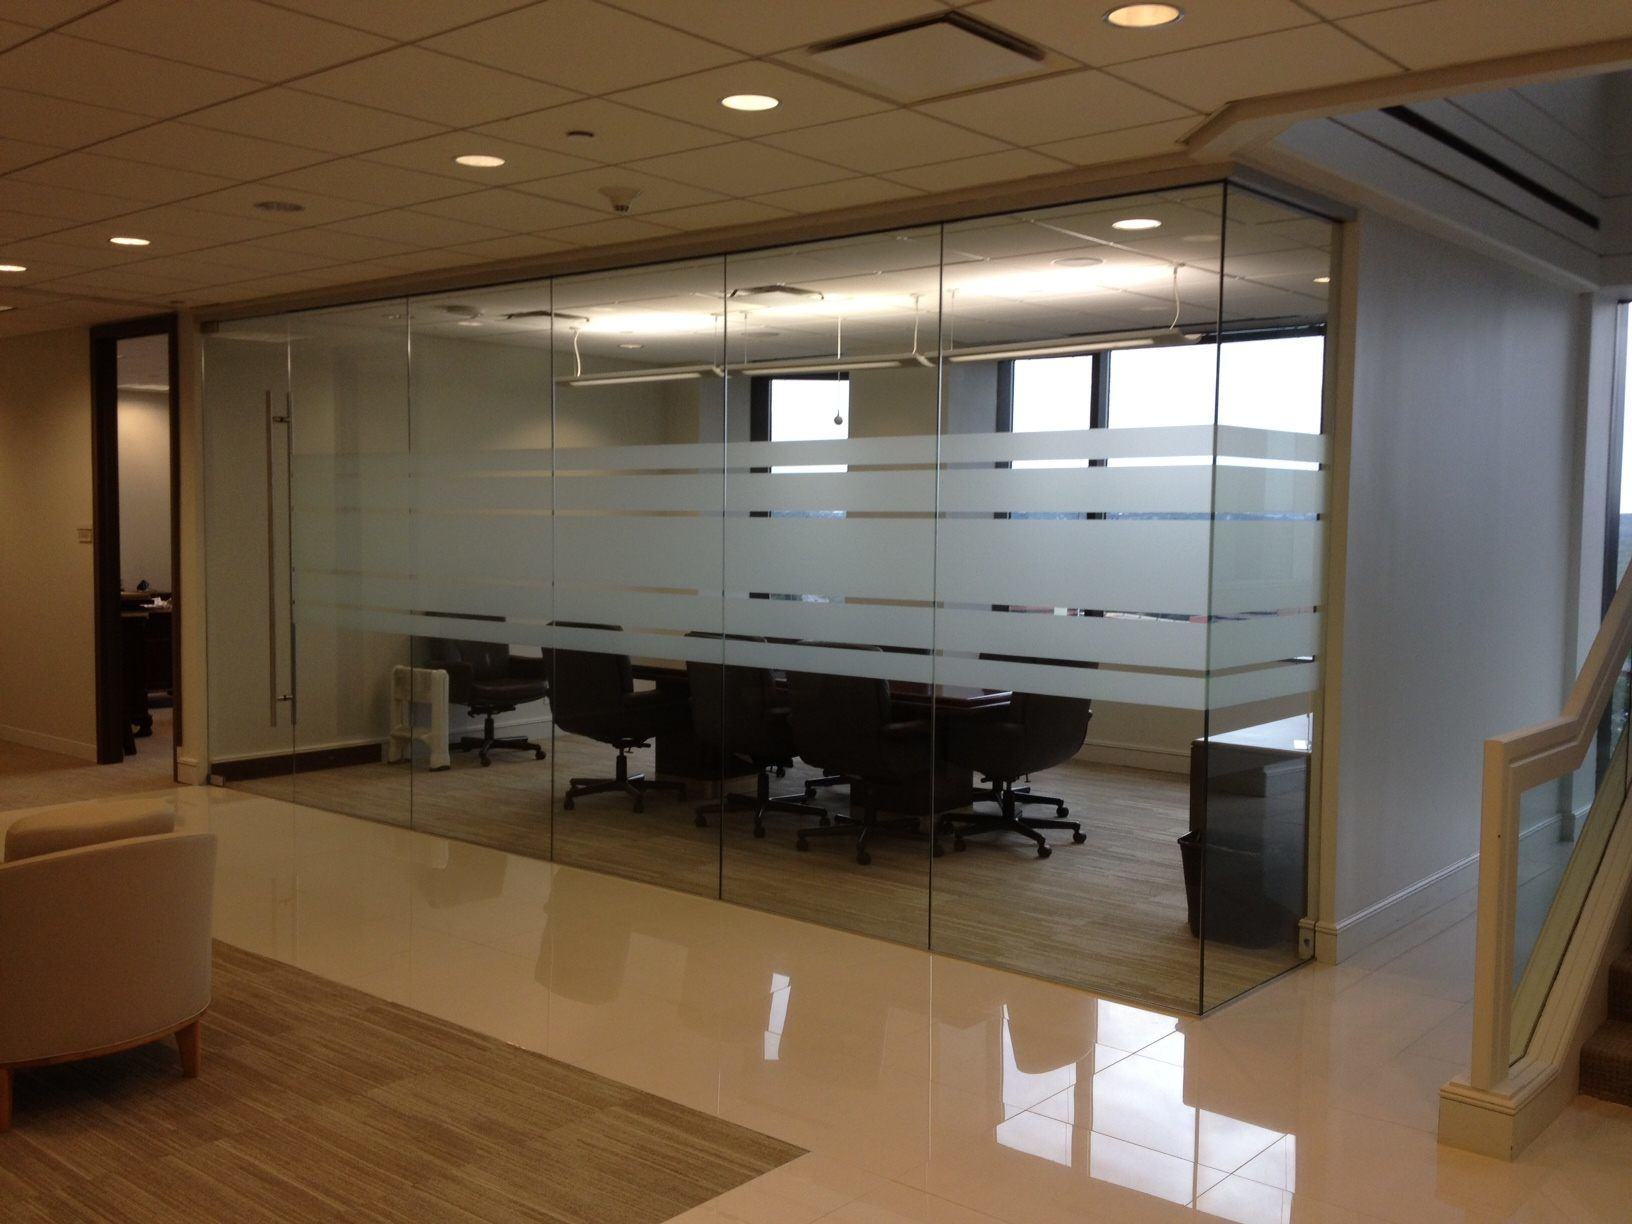 Conference Room Glass Doors Google Search Corporate Office Design Conference Room Design Office Design